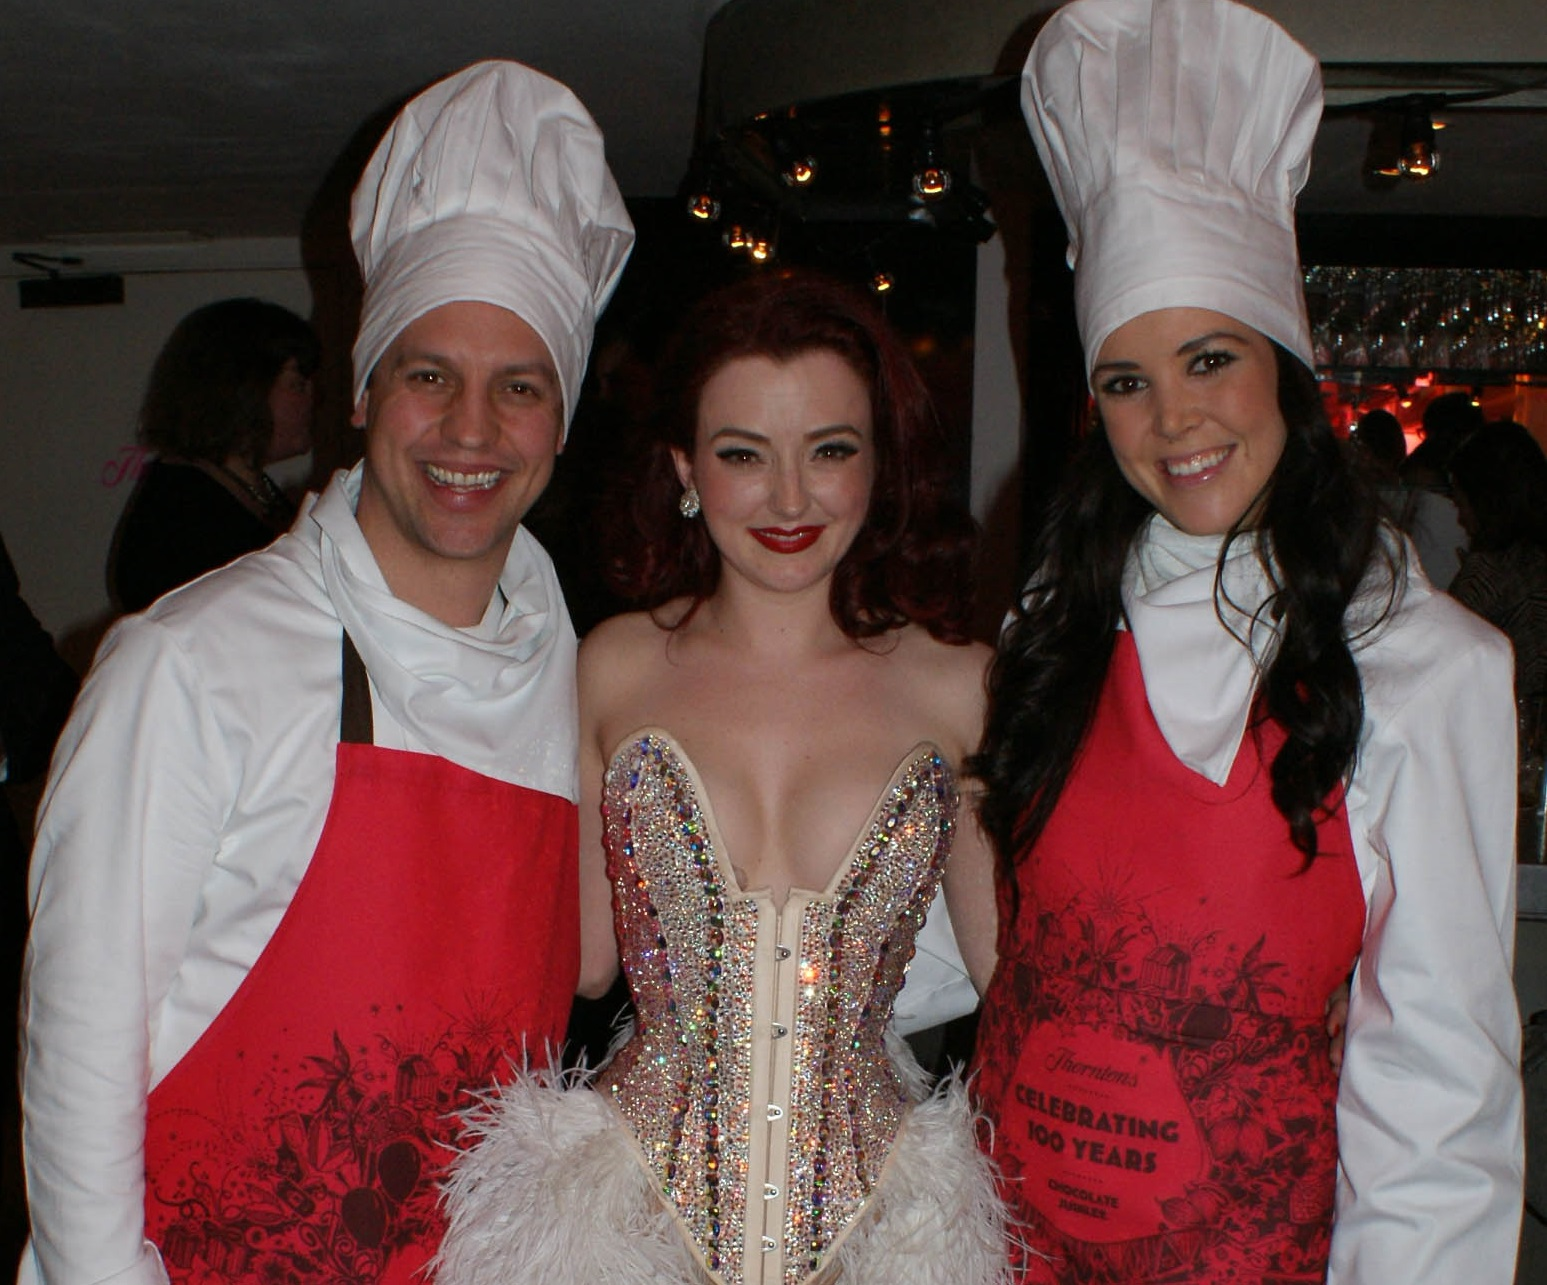 Two smiling chefs stand either side of a burlesque dancer